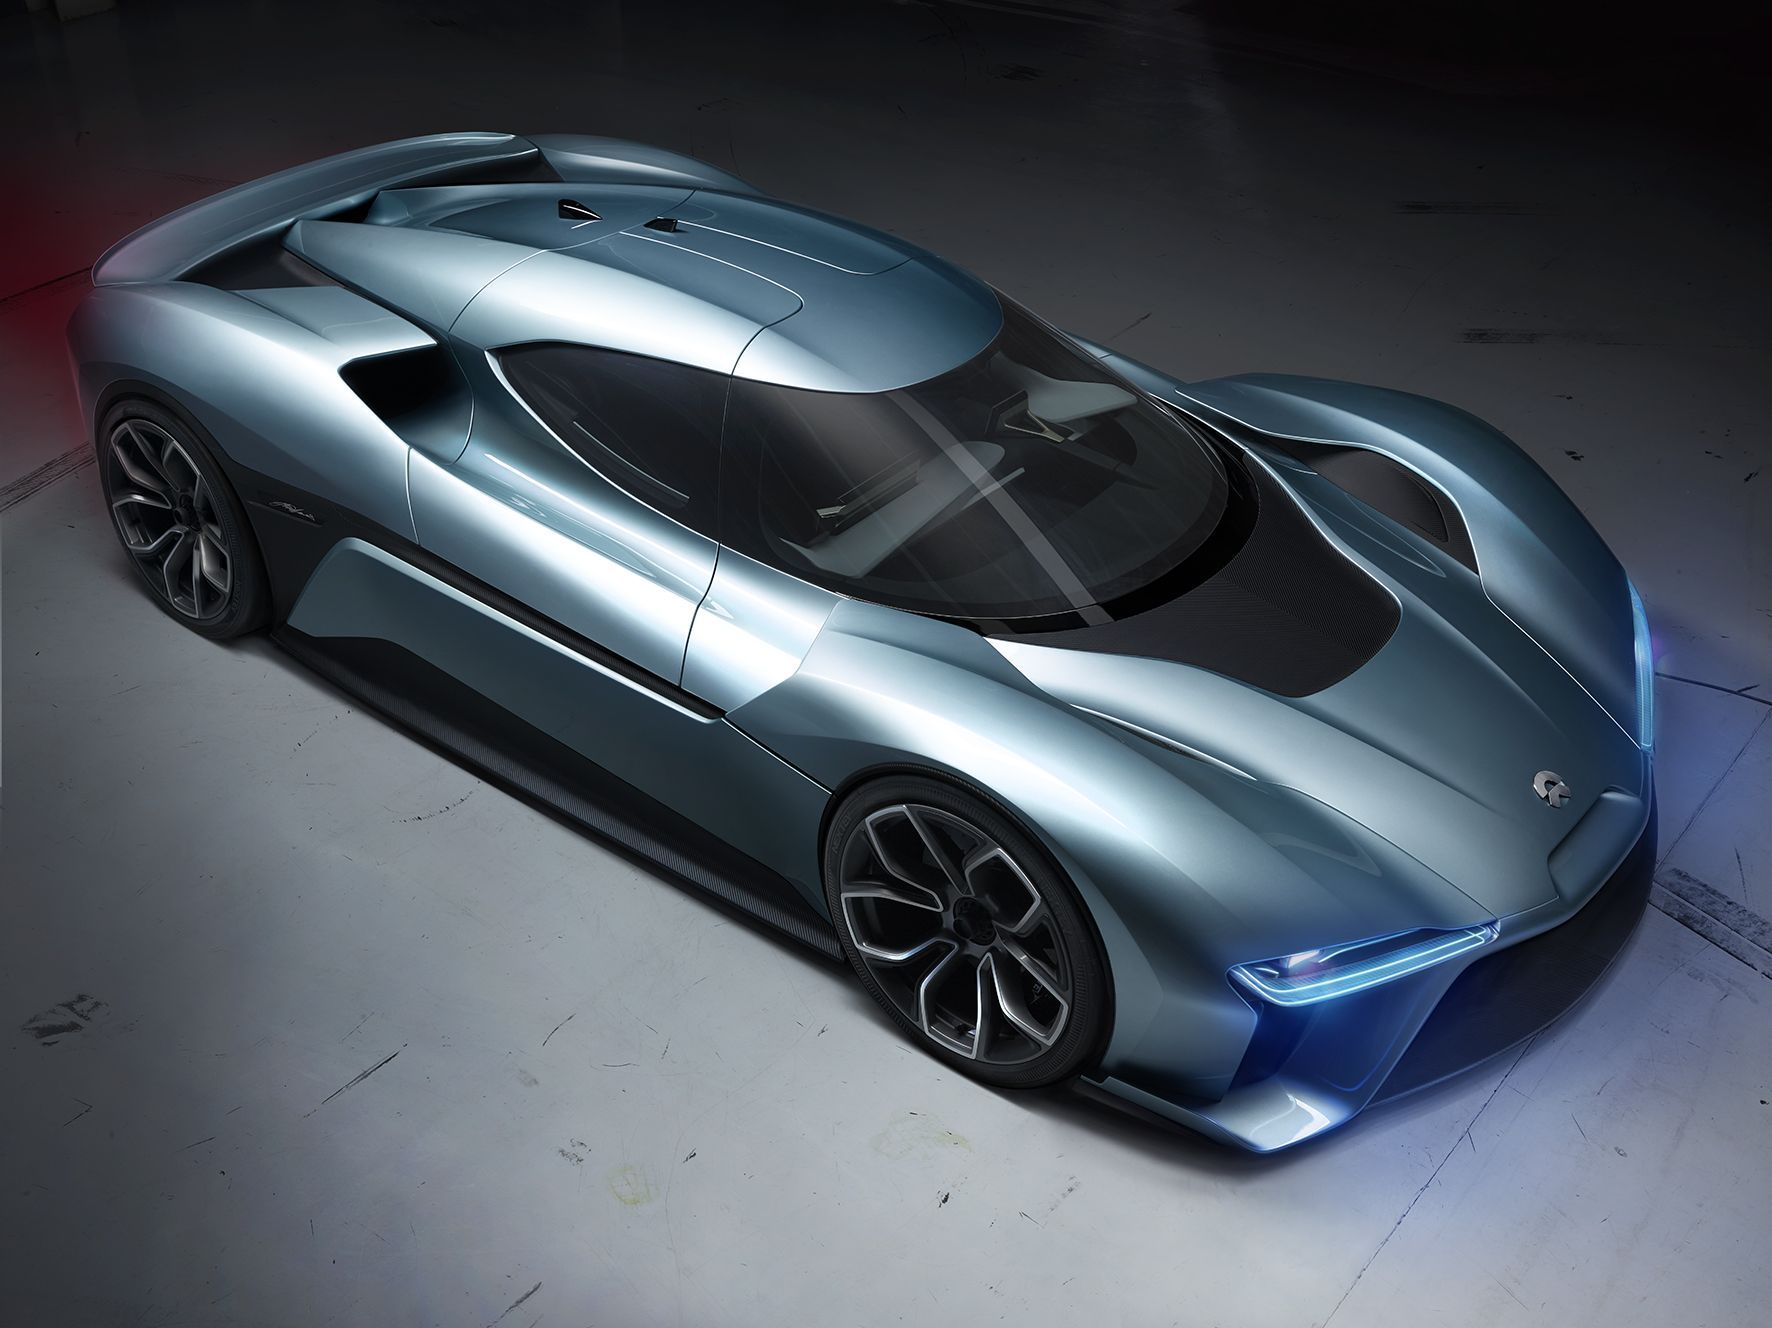 China S Nextev Says Its New Electric Supercar Is The World S Fastest Super Cars Hybrid Car Car Design